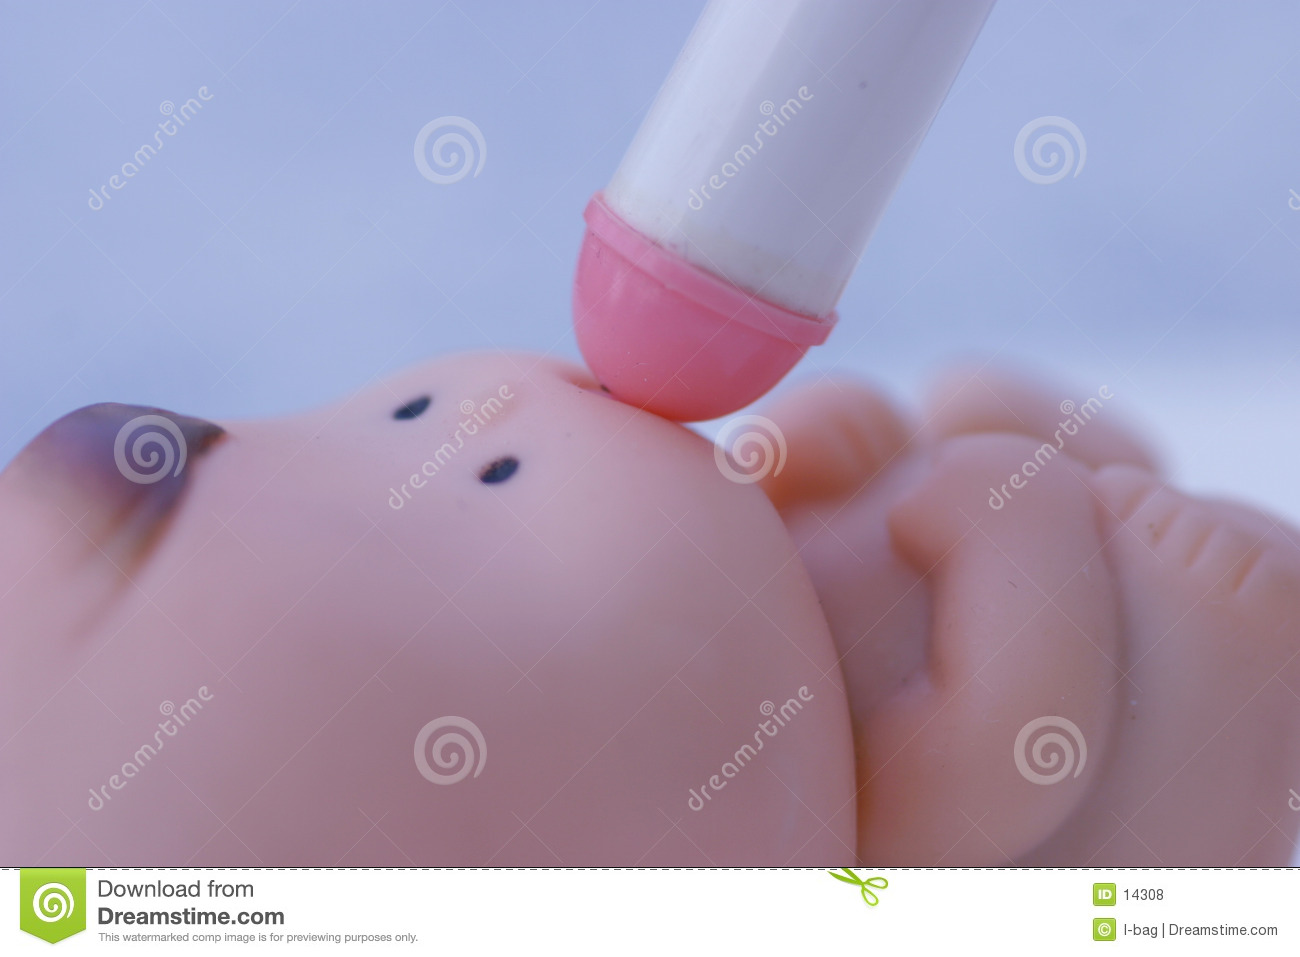 Toy baby drink